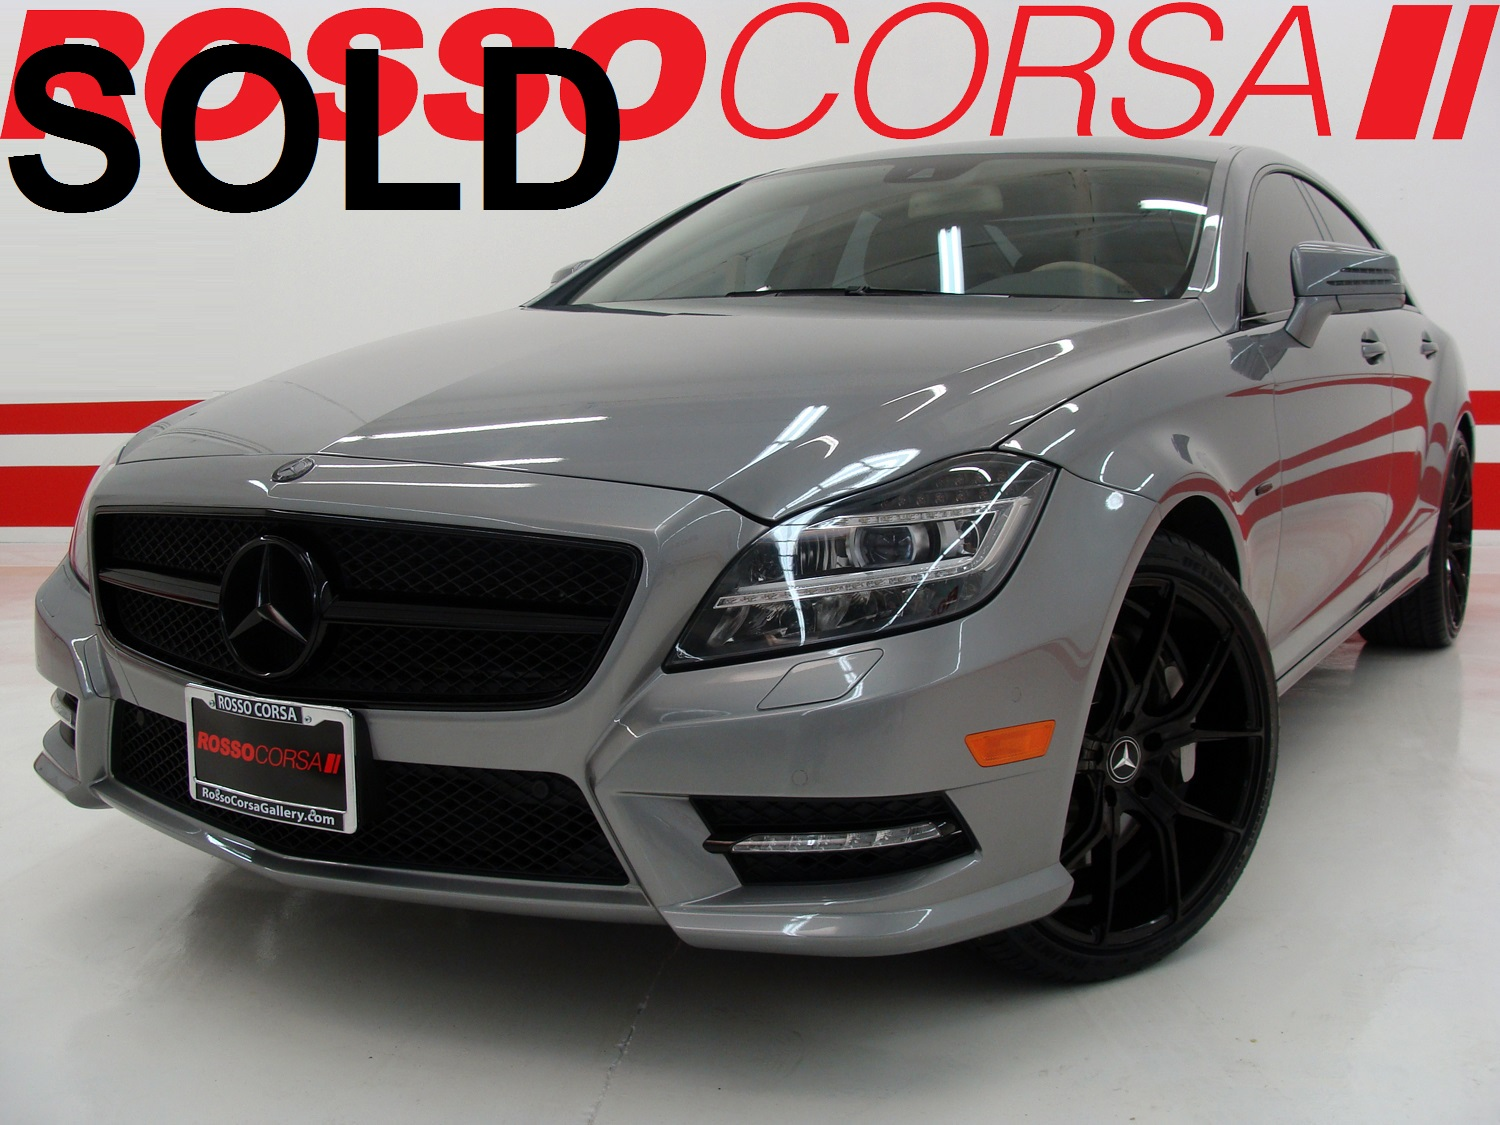 2012 Mercedes-Benz CLS550 CUSTOM ($85K MSRP)